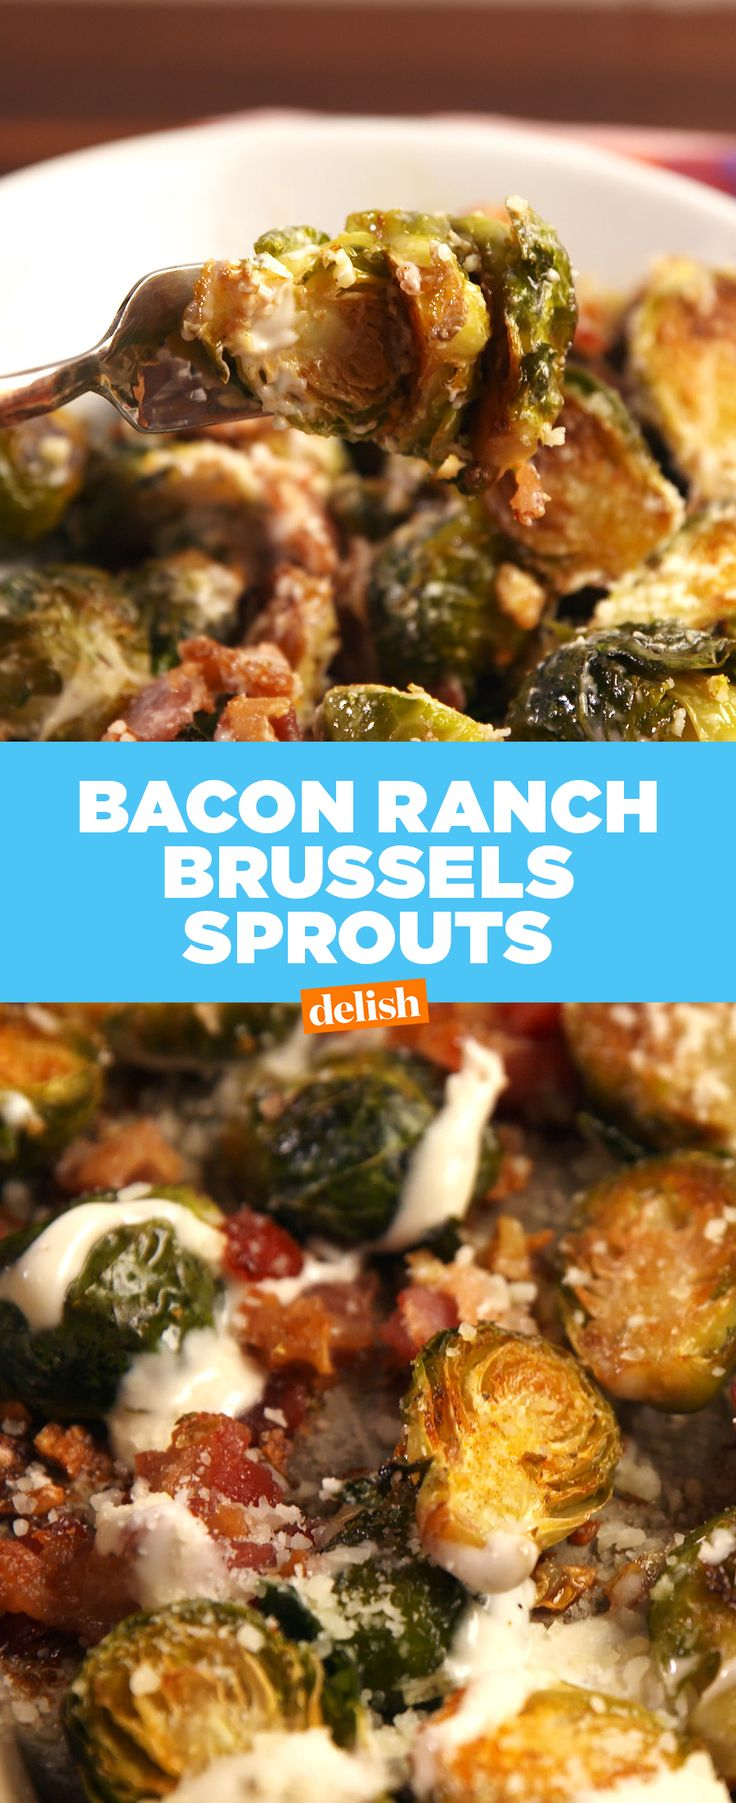 We CAN'T stop eating these Bacon Ranch Brussels Sprouts. Get the recipe at Delish.com.